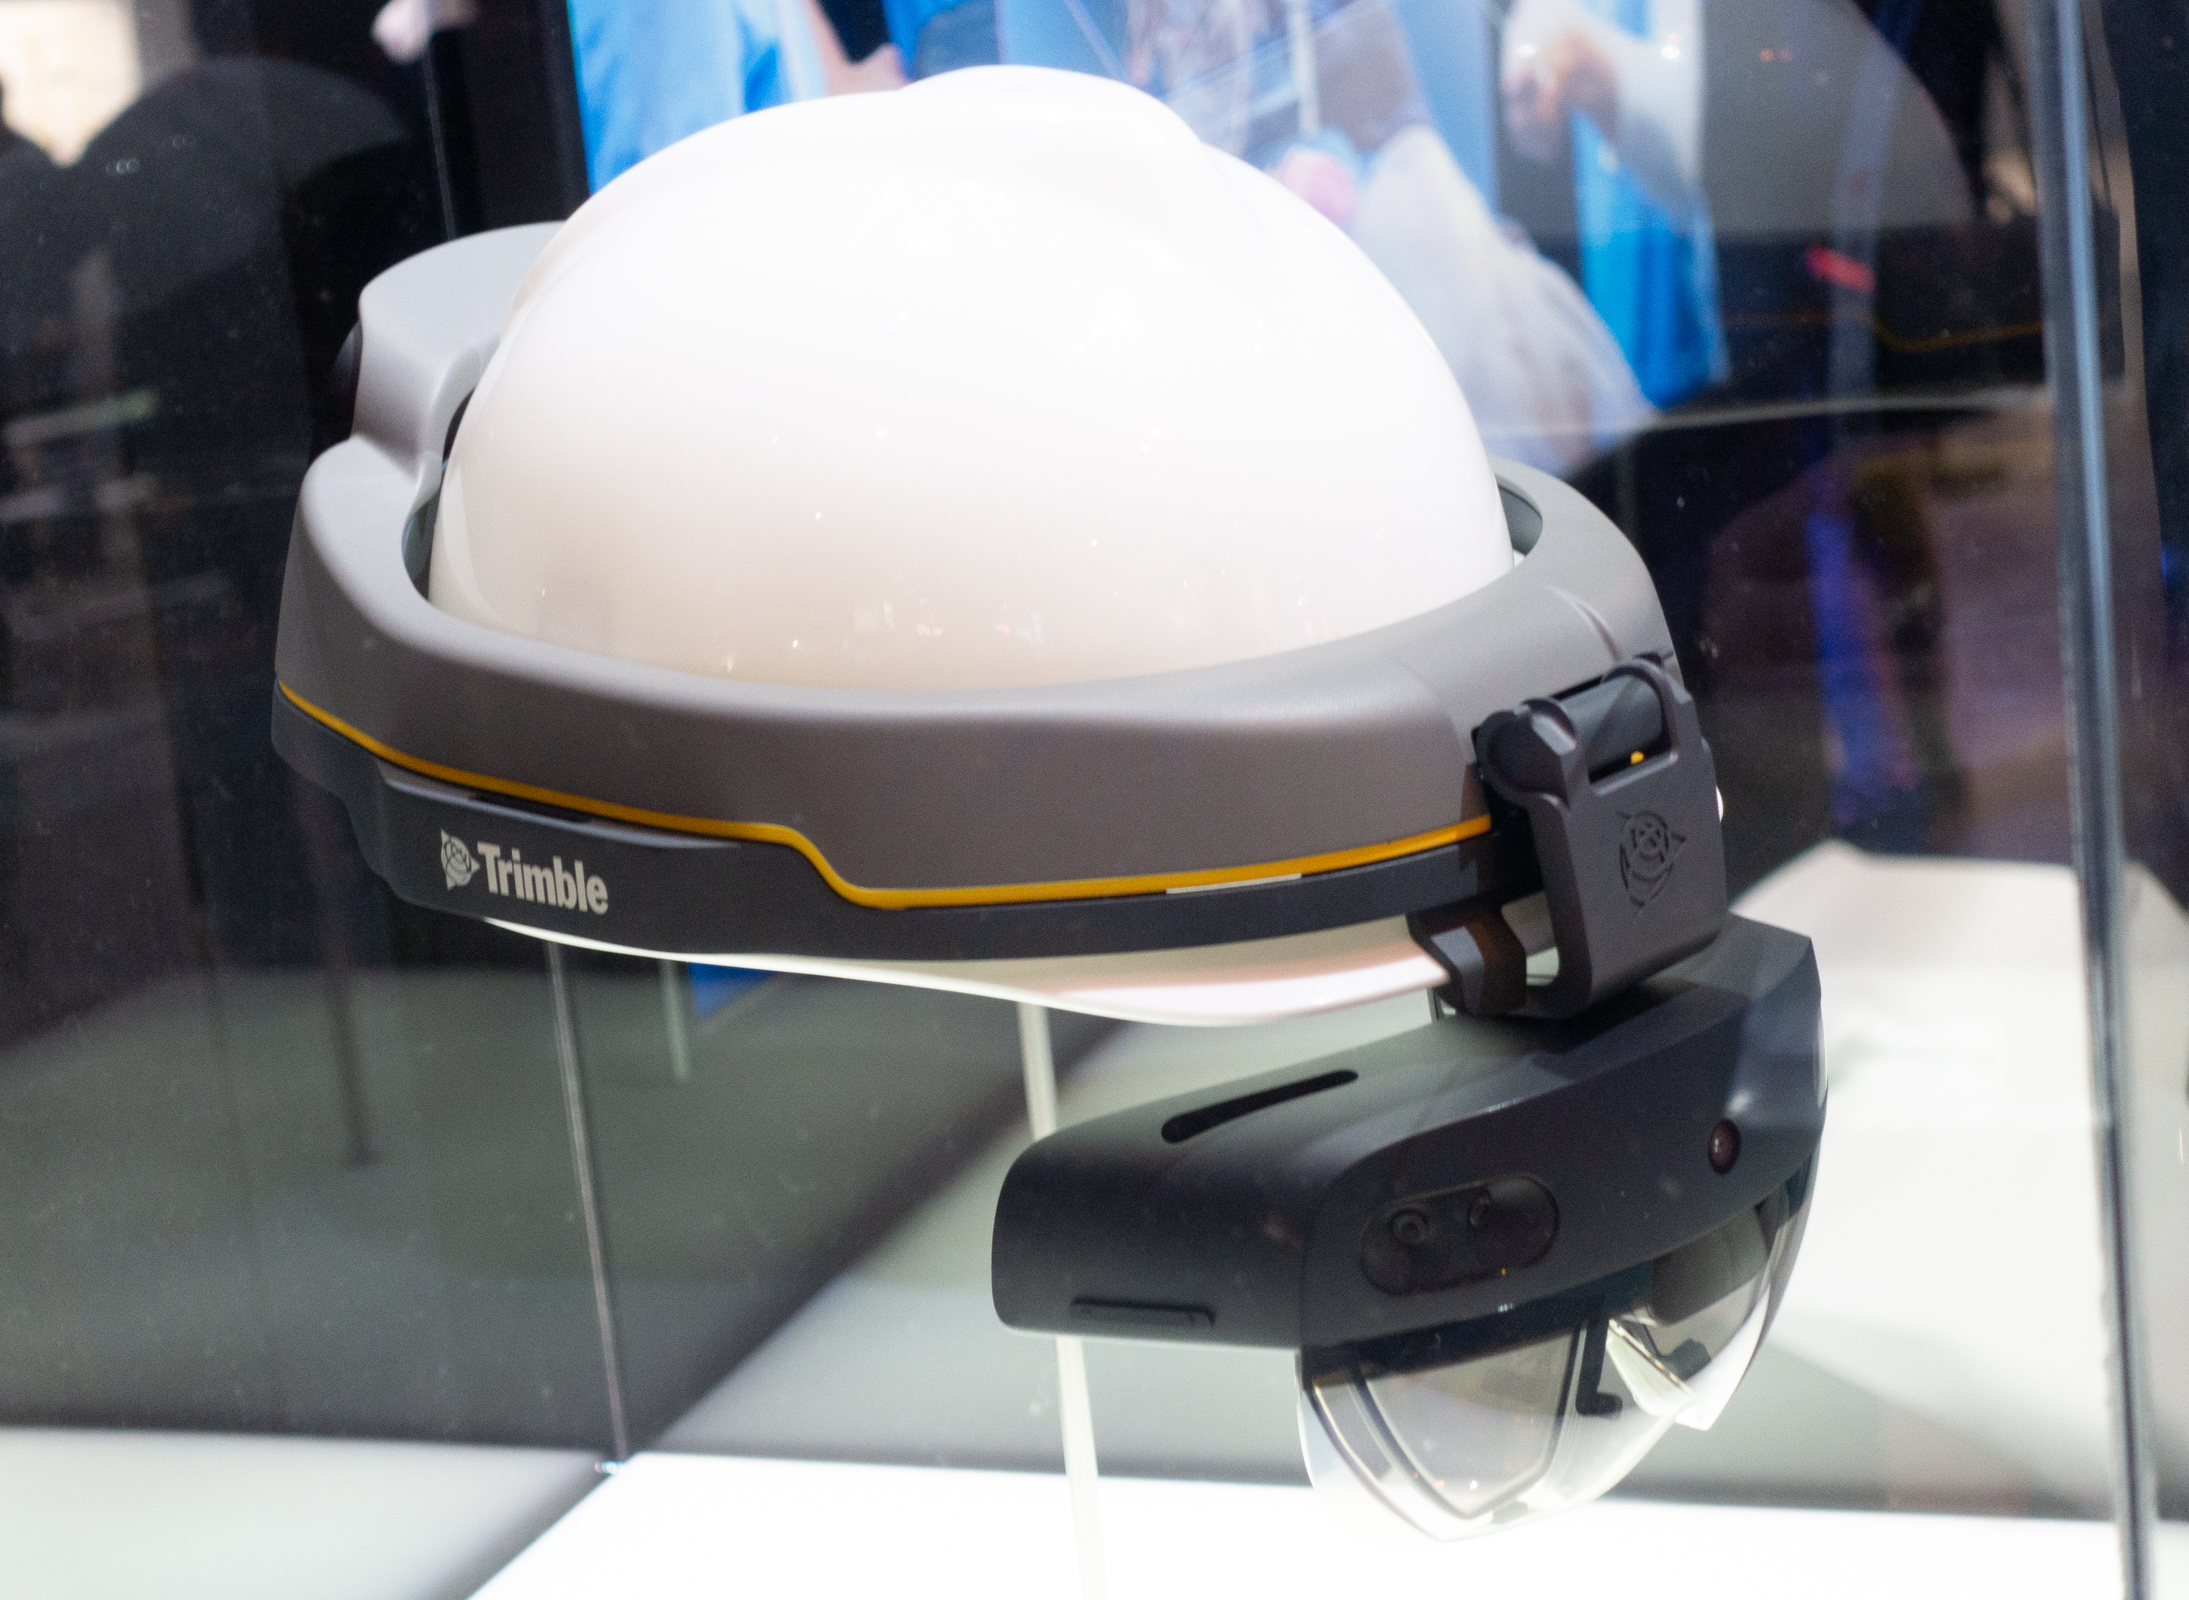 PC Revue | MWC 2019: Microsoft brought Hollens 2 and Azure